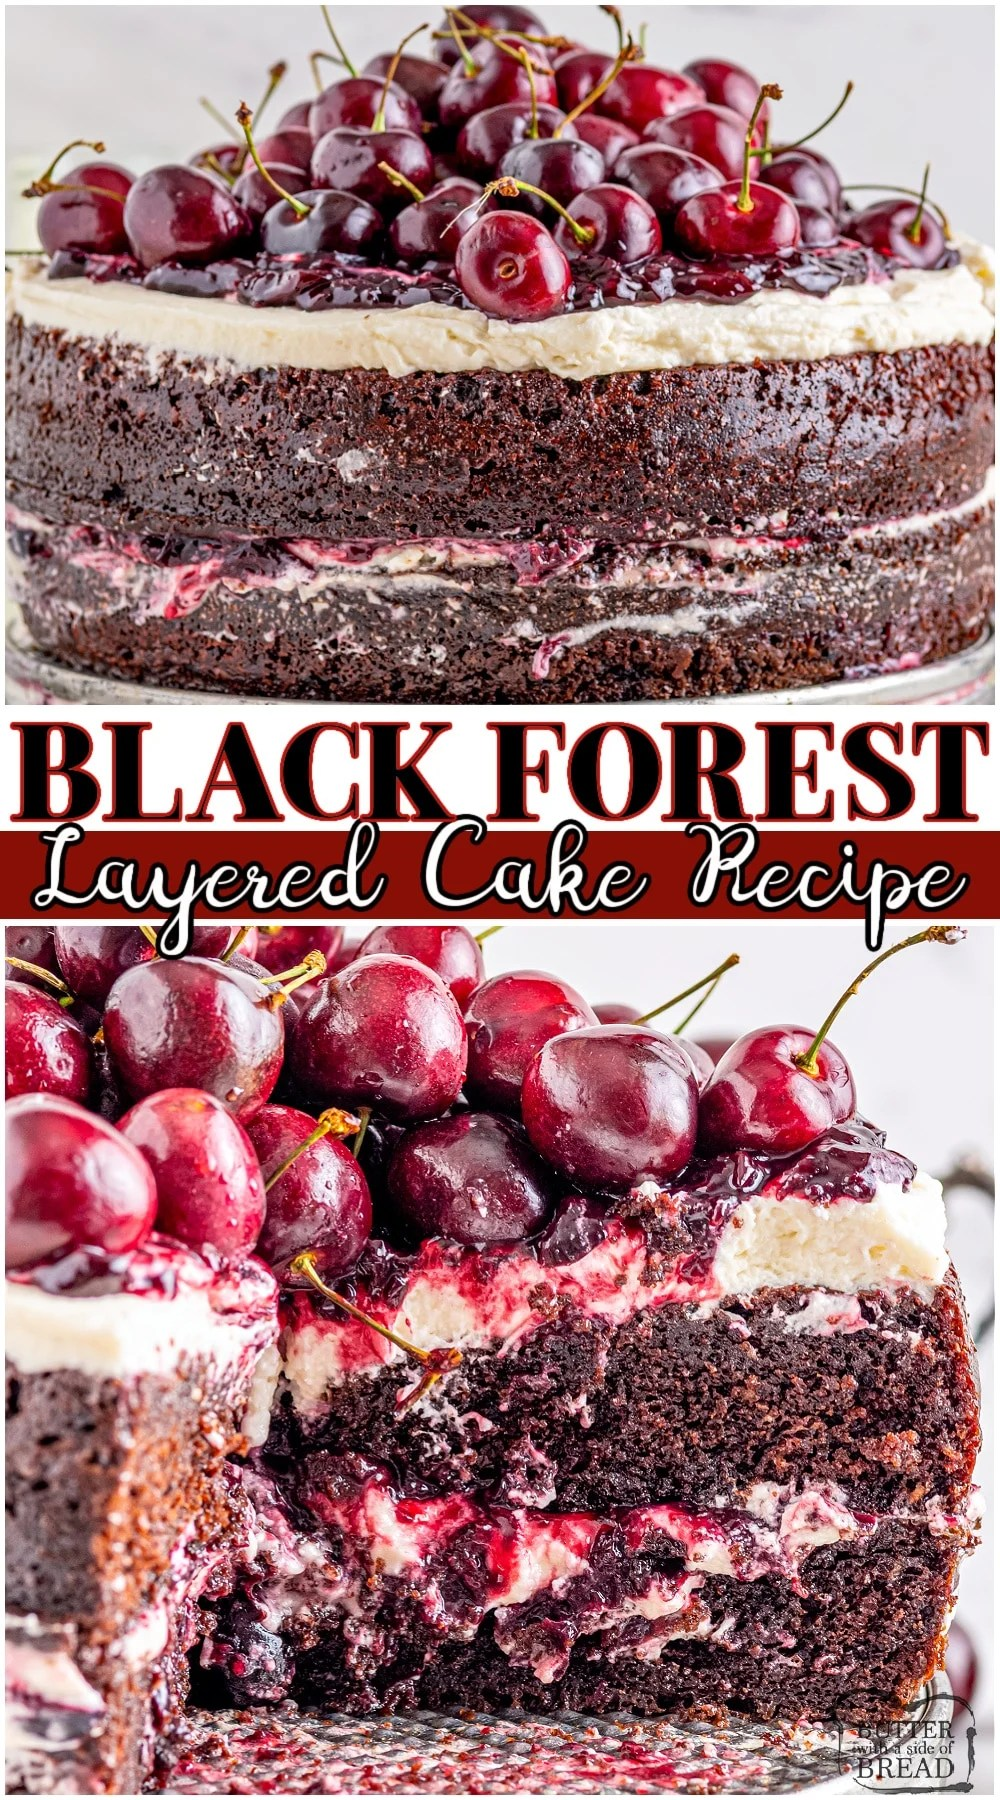 Homemade Black Forest Cake made with layers of chocolate cake, sweet cream and cherries! Elegant Black Forest Cherry Cake made from scratch and decorated easily with cherries & chocolate. #blackforest #cake #cherry #cherries #baking #easyrecipe from BUTTER WITH A SIDE OF BREAD